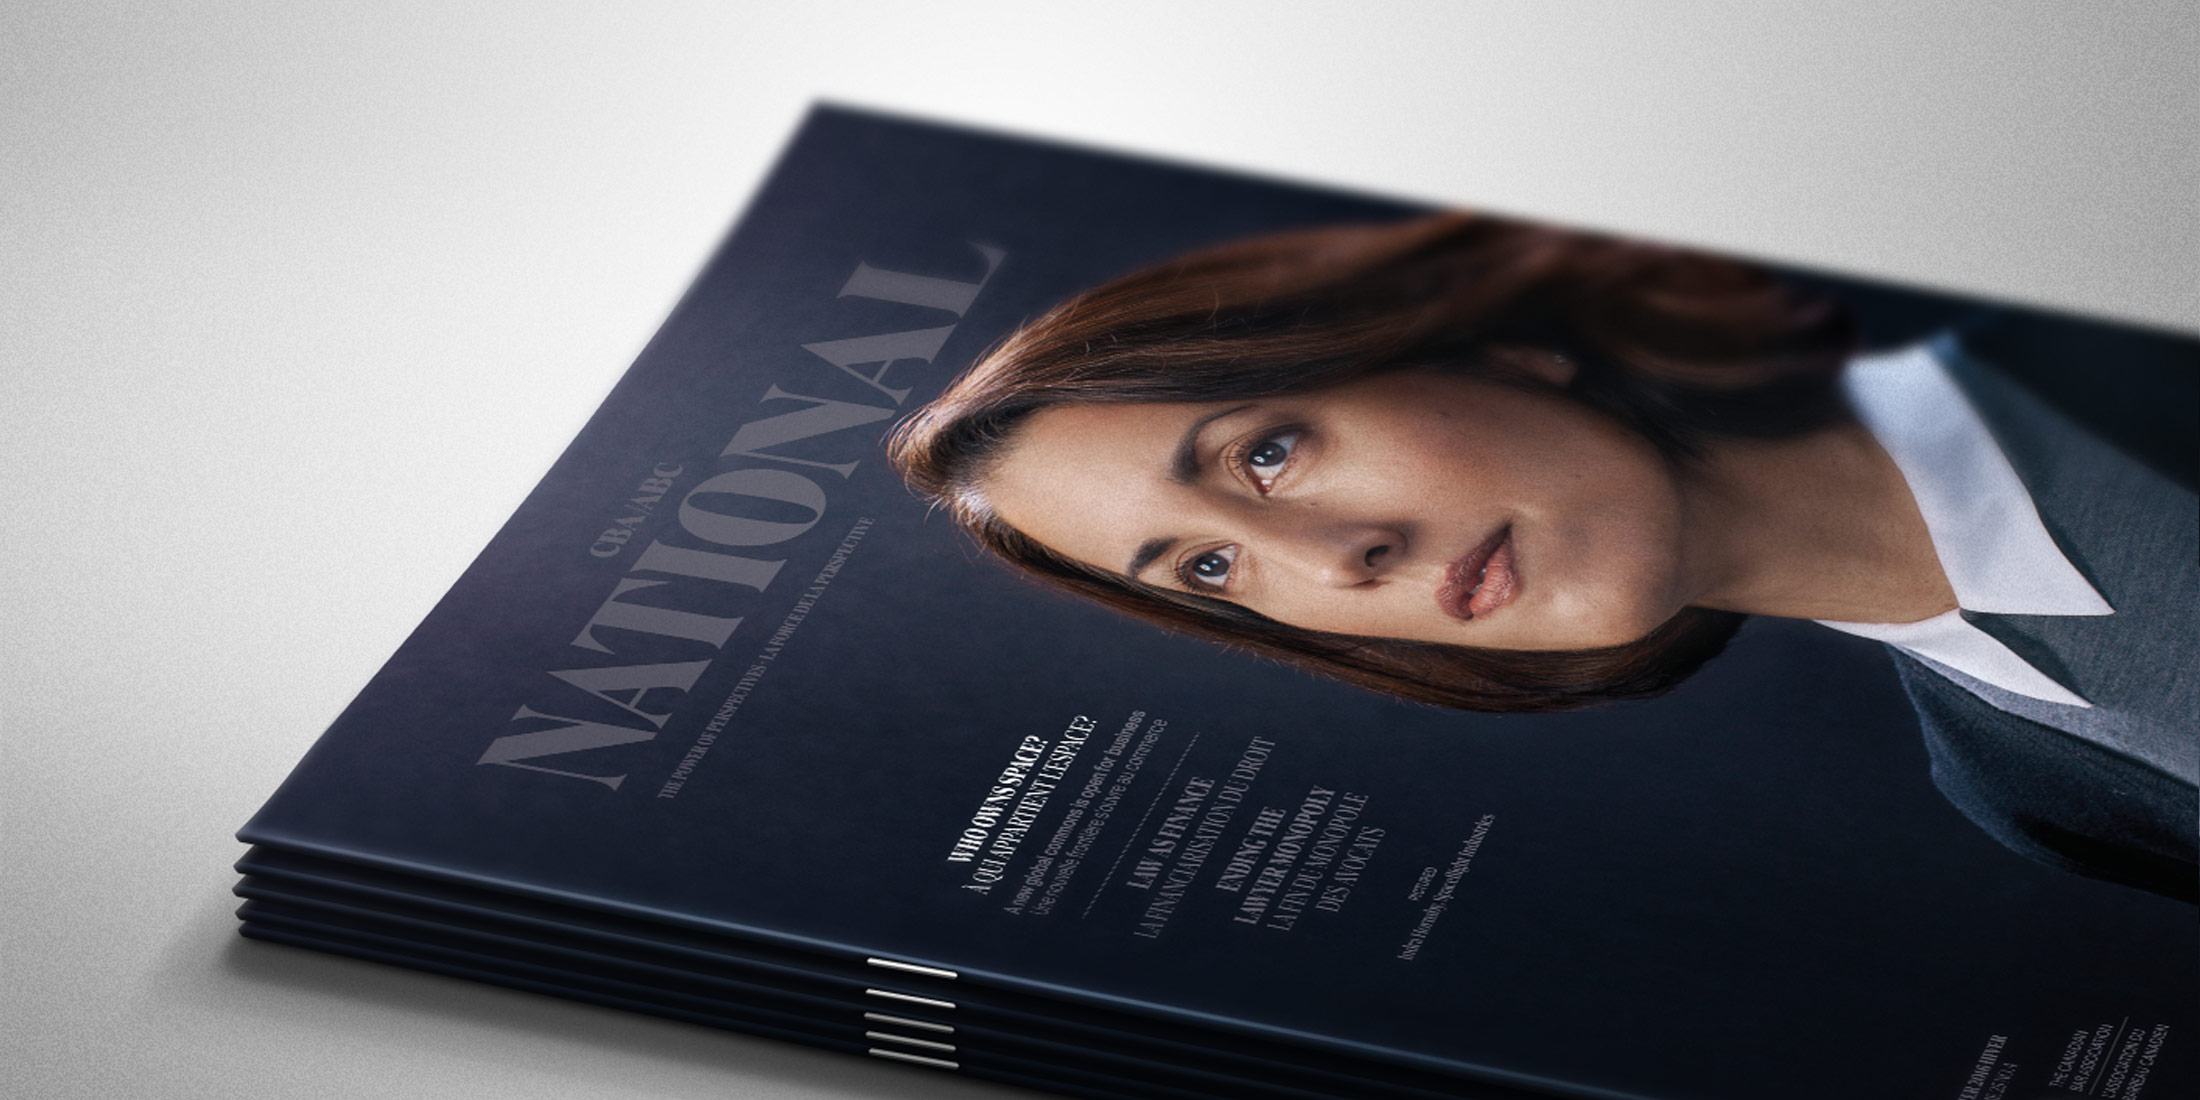 The Canadian Bar Association's National Magazine